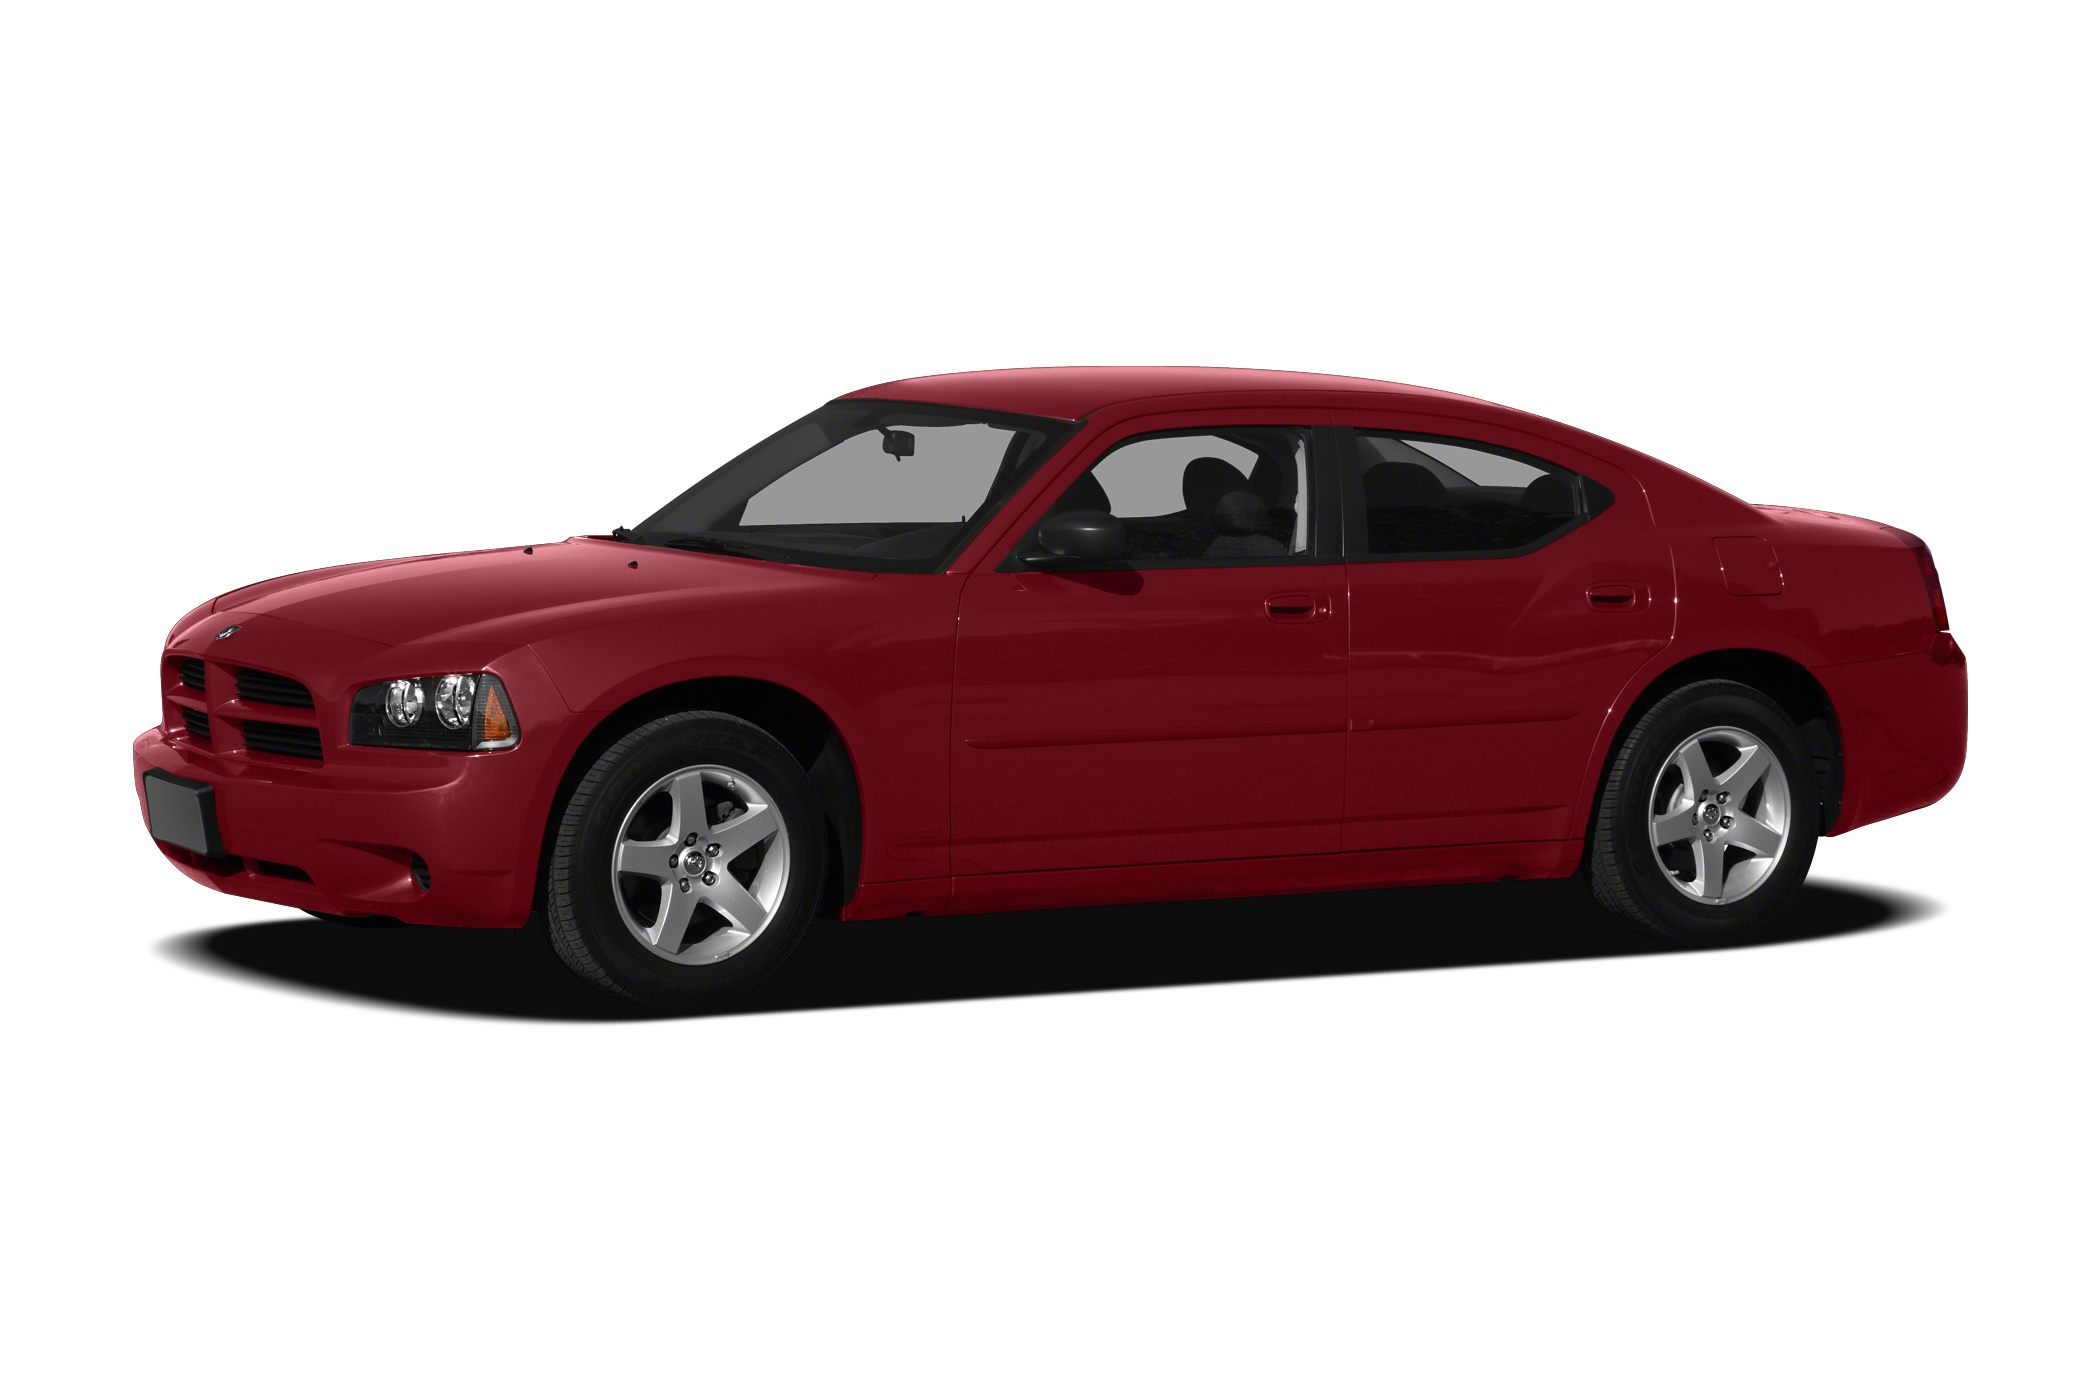 2008 Dodge Charger SXT Sedan for sale in Effingham for $12,990 with 81,020 miles